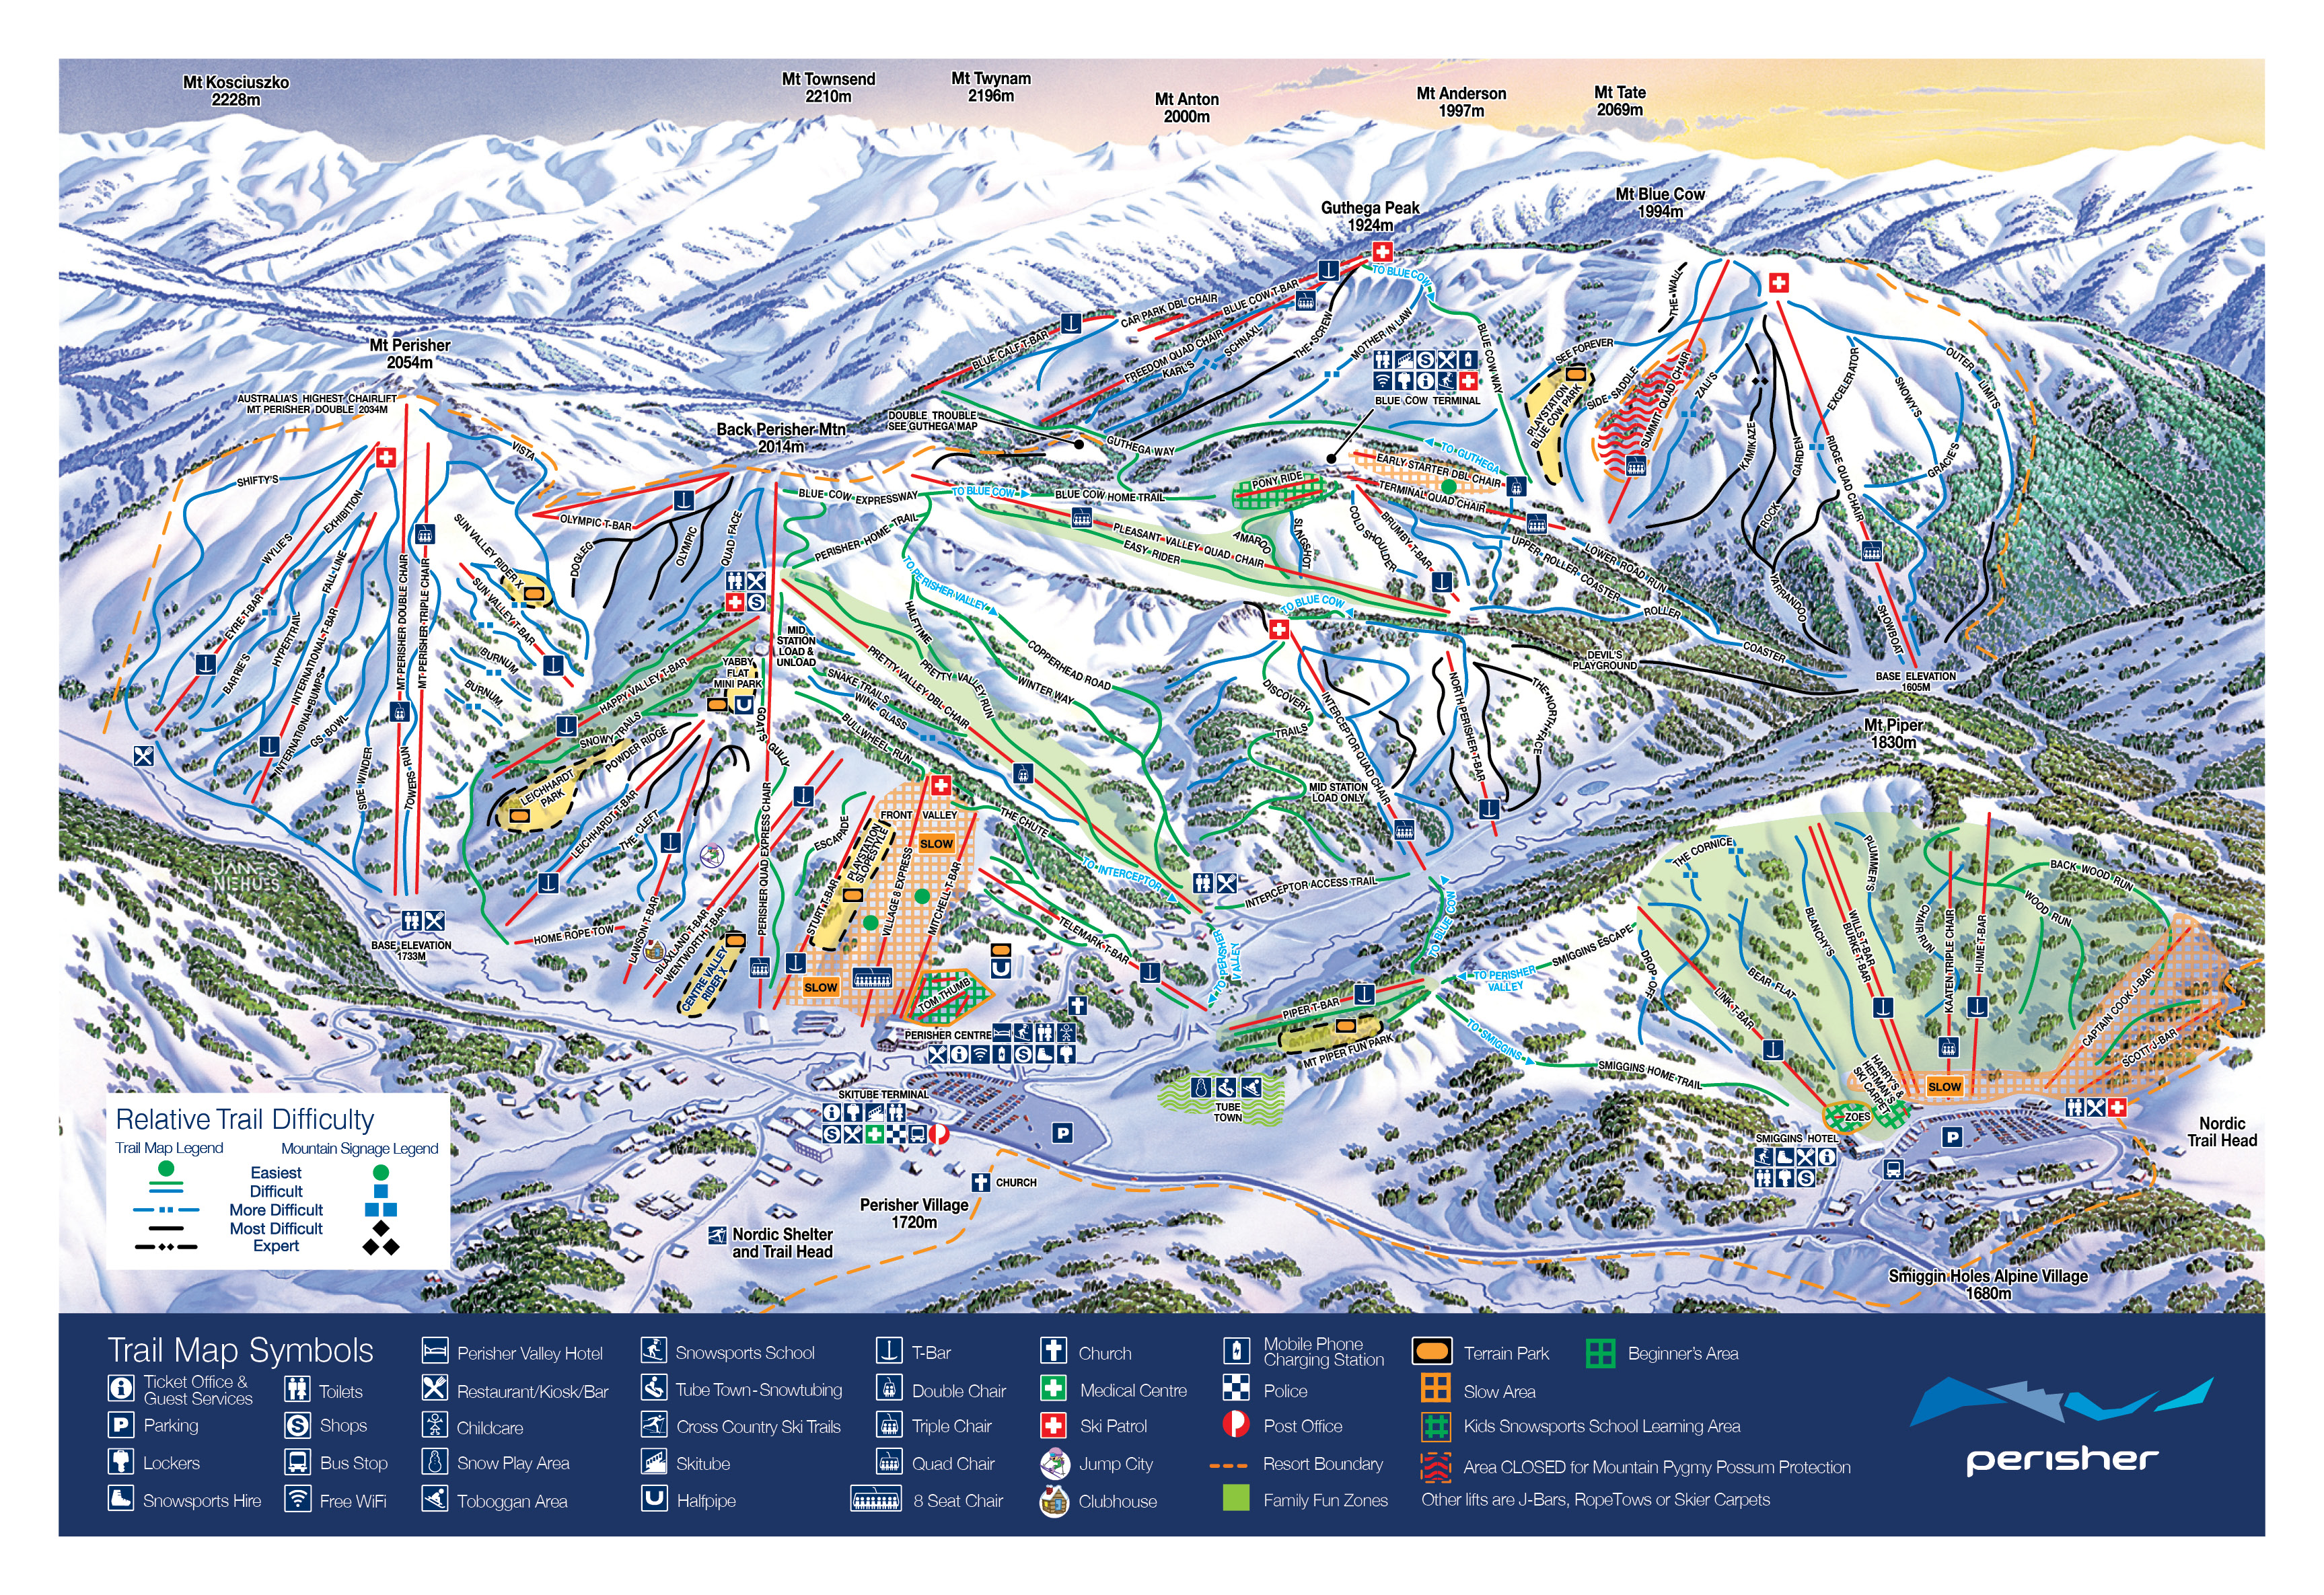 ski resorts in oregon map with Perisher on Trail Map further Luxury How Many Ski Resorts In Washington State besides New H shire 4000 Footers Poster Map moreover Lake Tahoe Ski Resorts Map Poster together with Adirondack High Peaks Map 18x24 Poster.